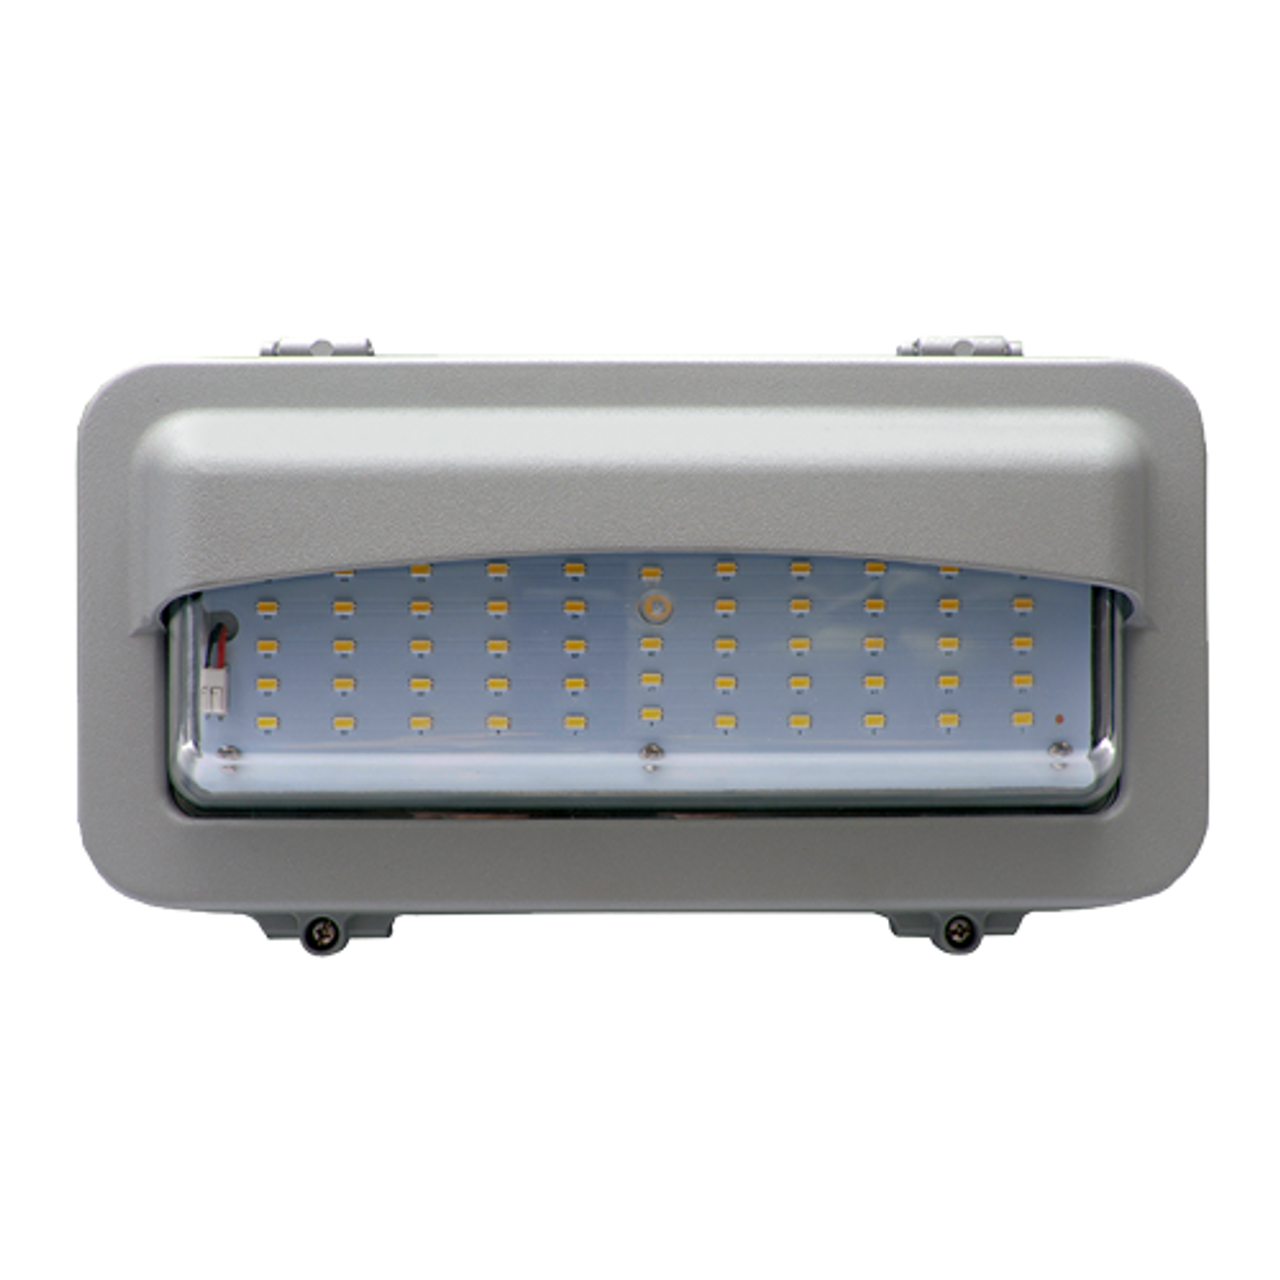 LED Explosion Proof Horizontal Hood 12 in. Linear Light